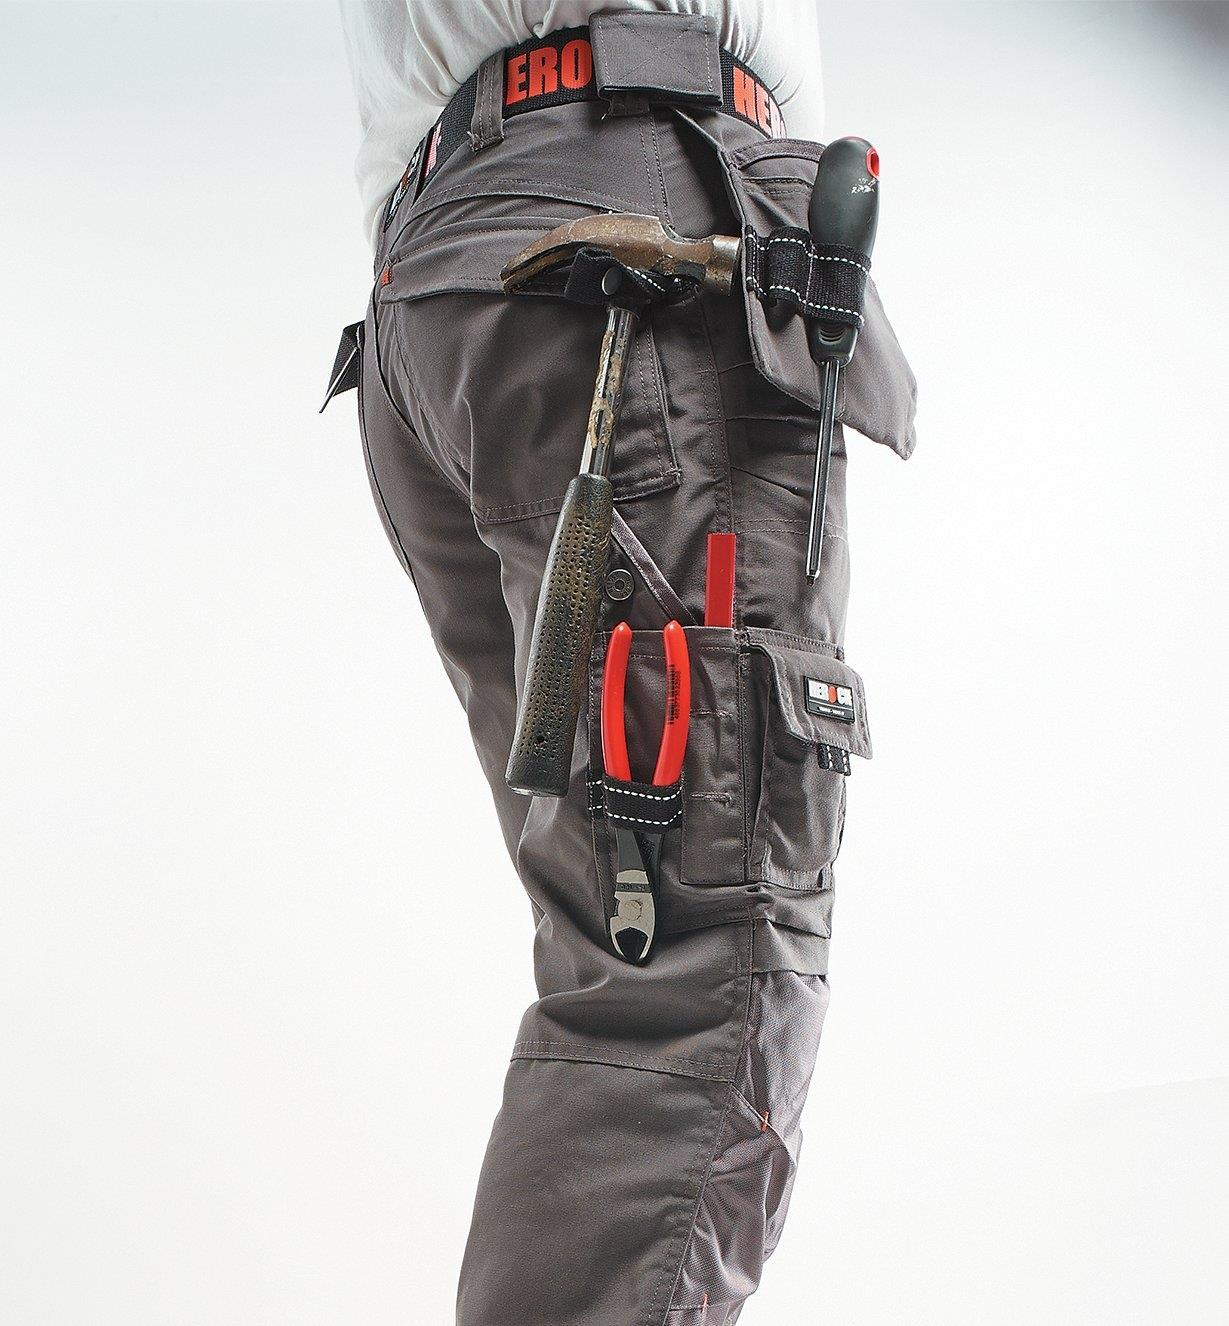 Side view of gray pants with various tools in the loops and pockets